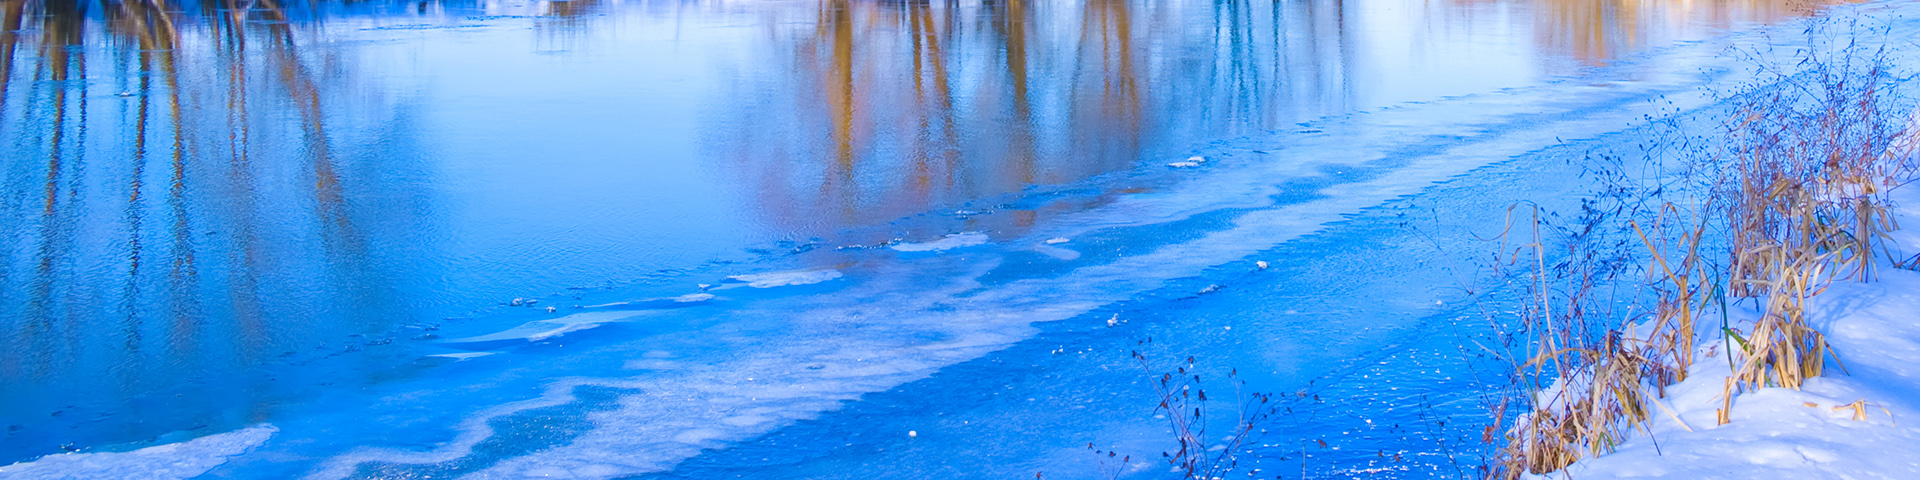 1920x480-blue-frozen-river